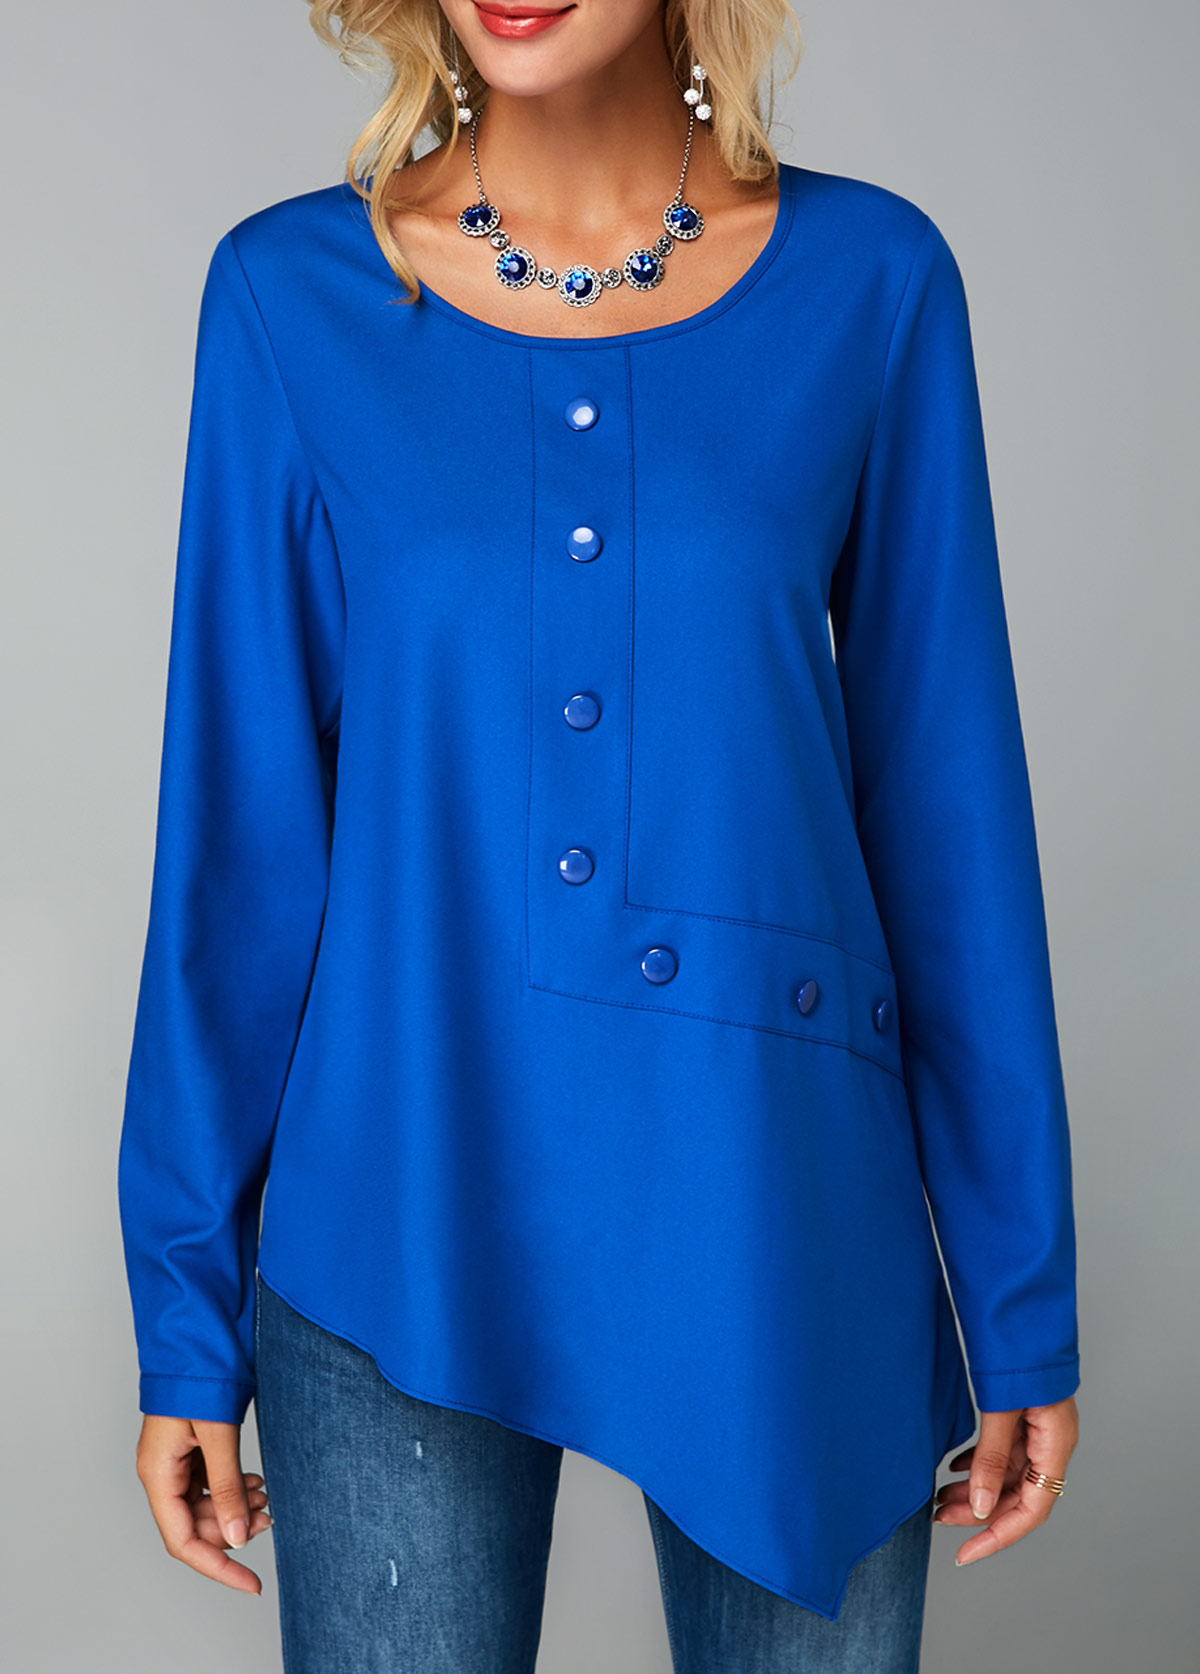 Button Decorated Keyhole Back Royal Blue Blouse